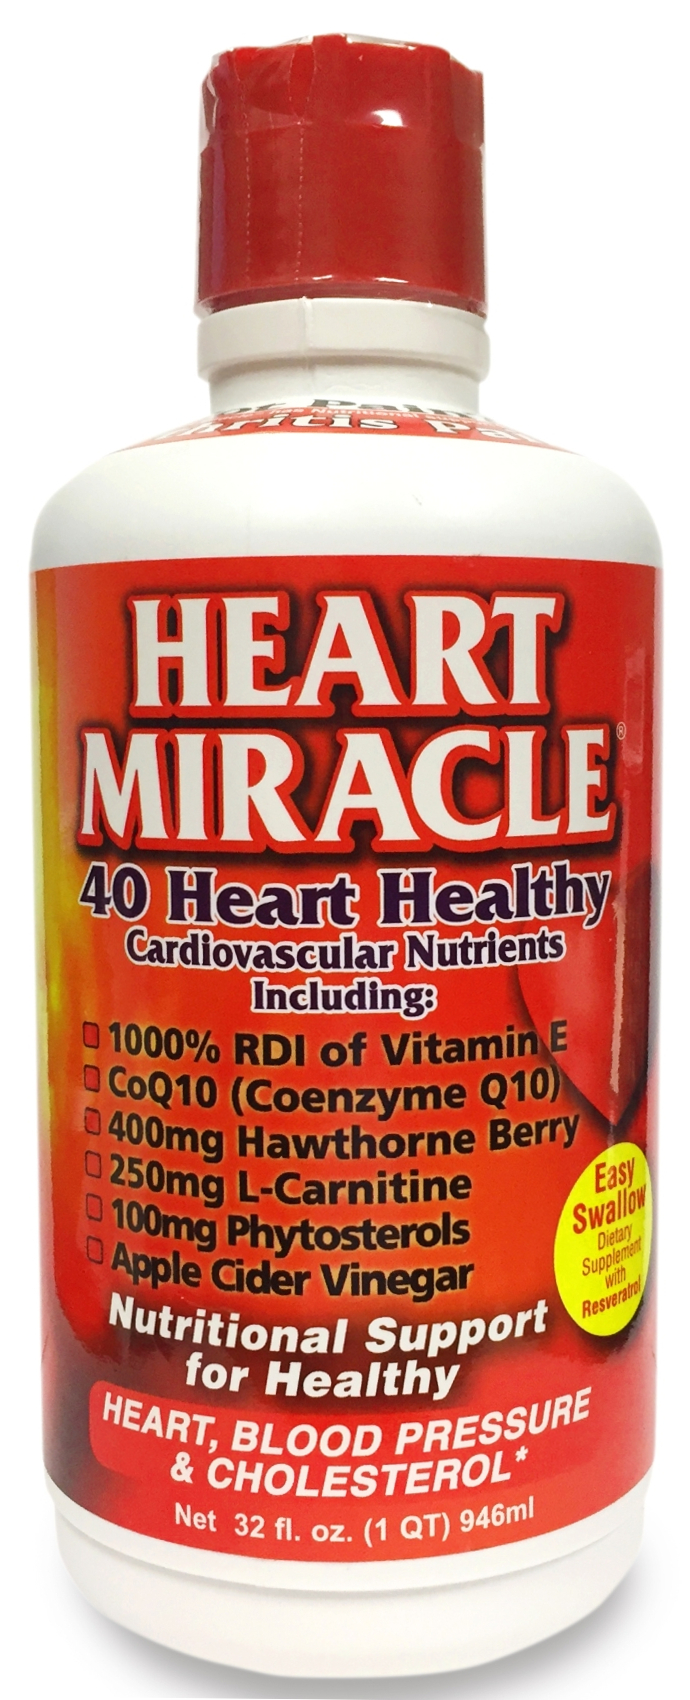 Heart Miracle Cherry Flavor 32 fl oz (946 ml) by Century Systems